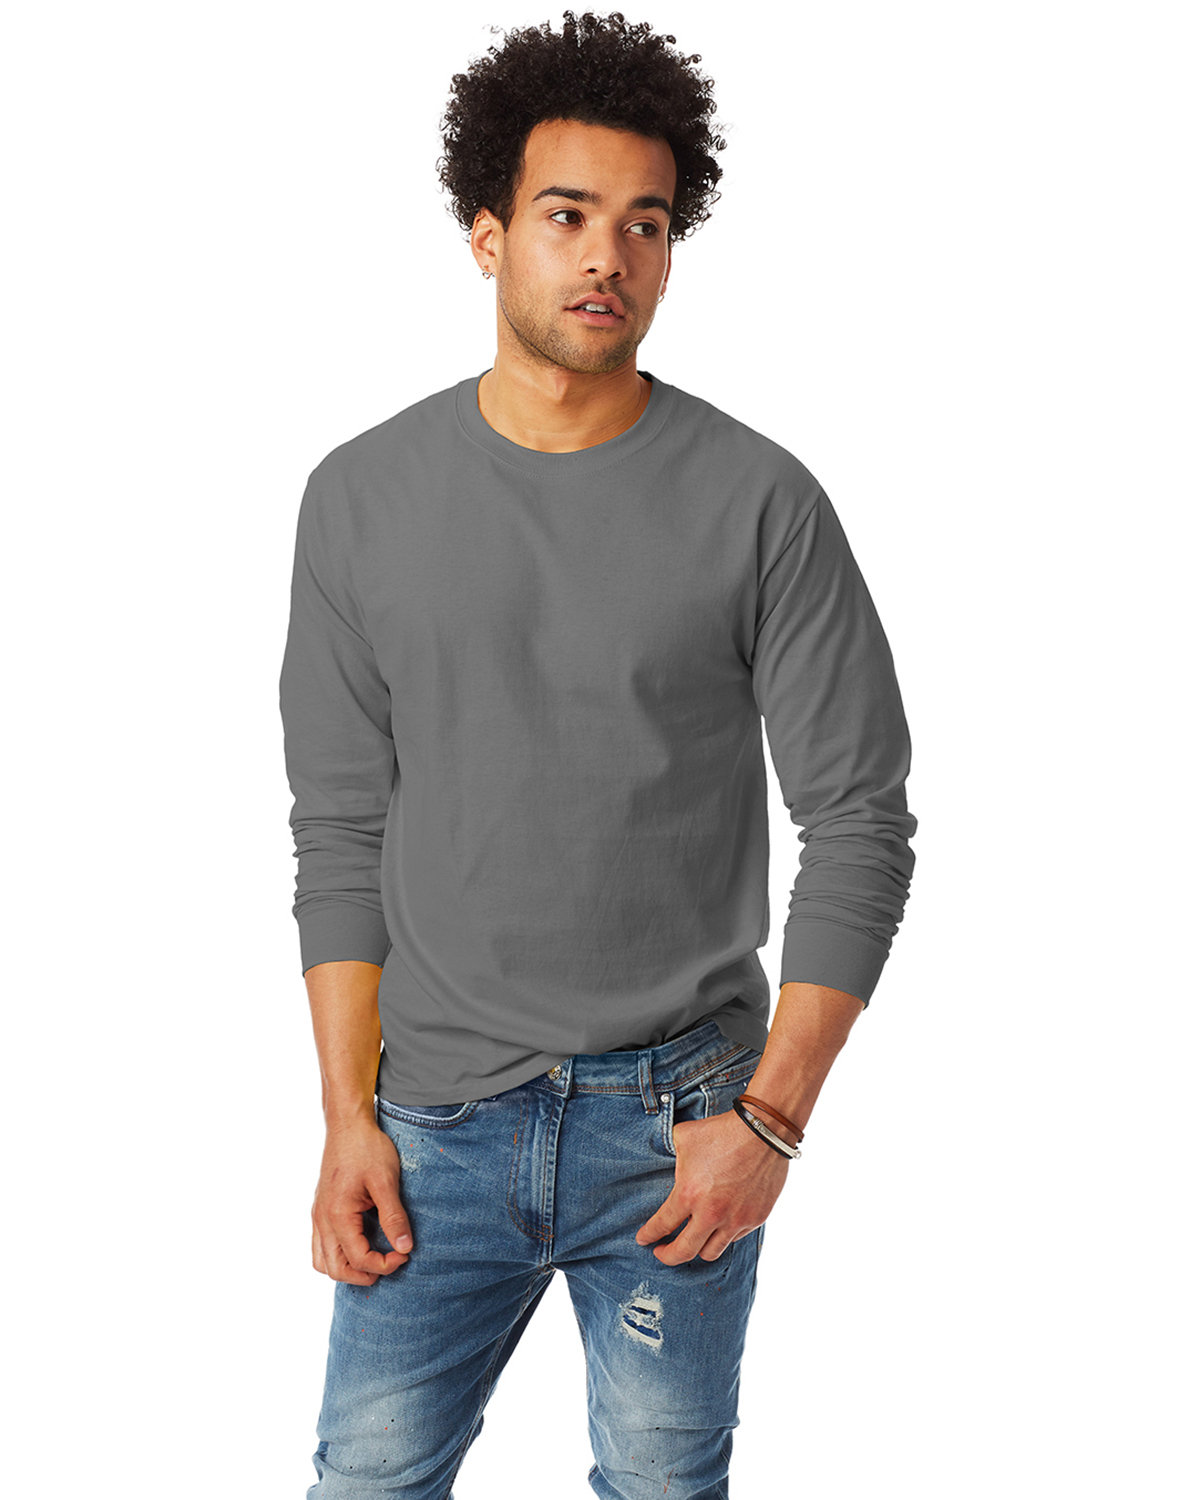 Hanes Adult Authentic-T Long-Sleeve T-Shirt SMOKE GRAY